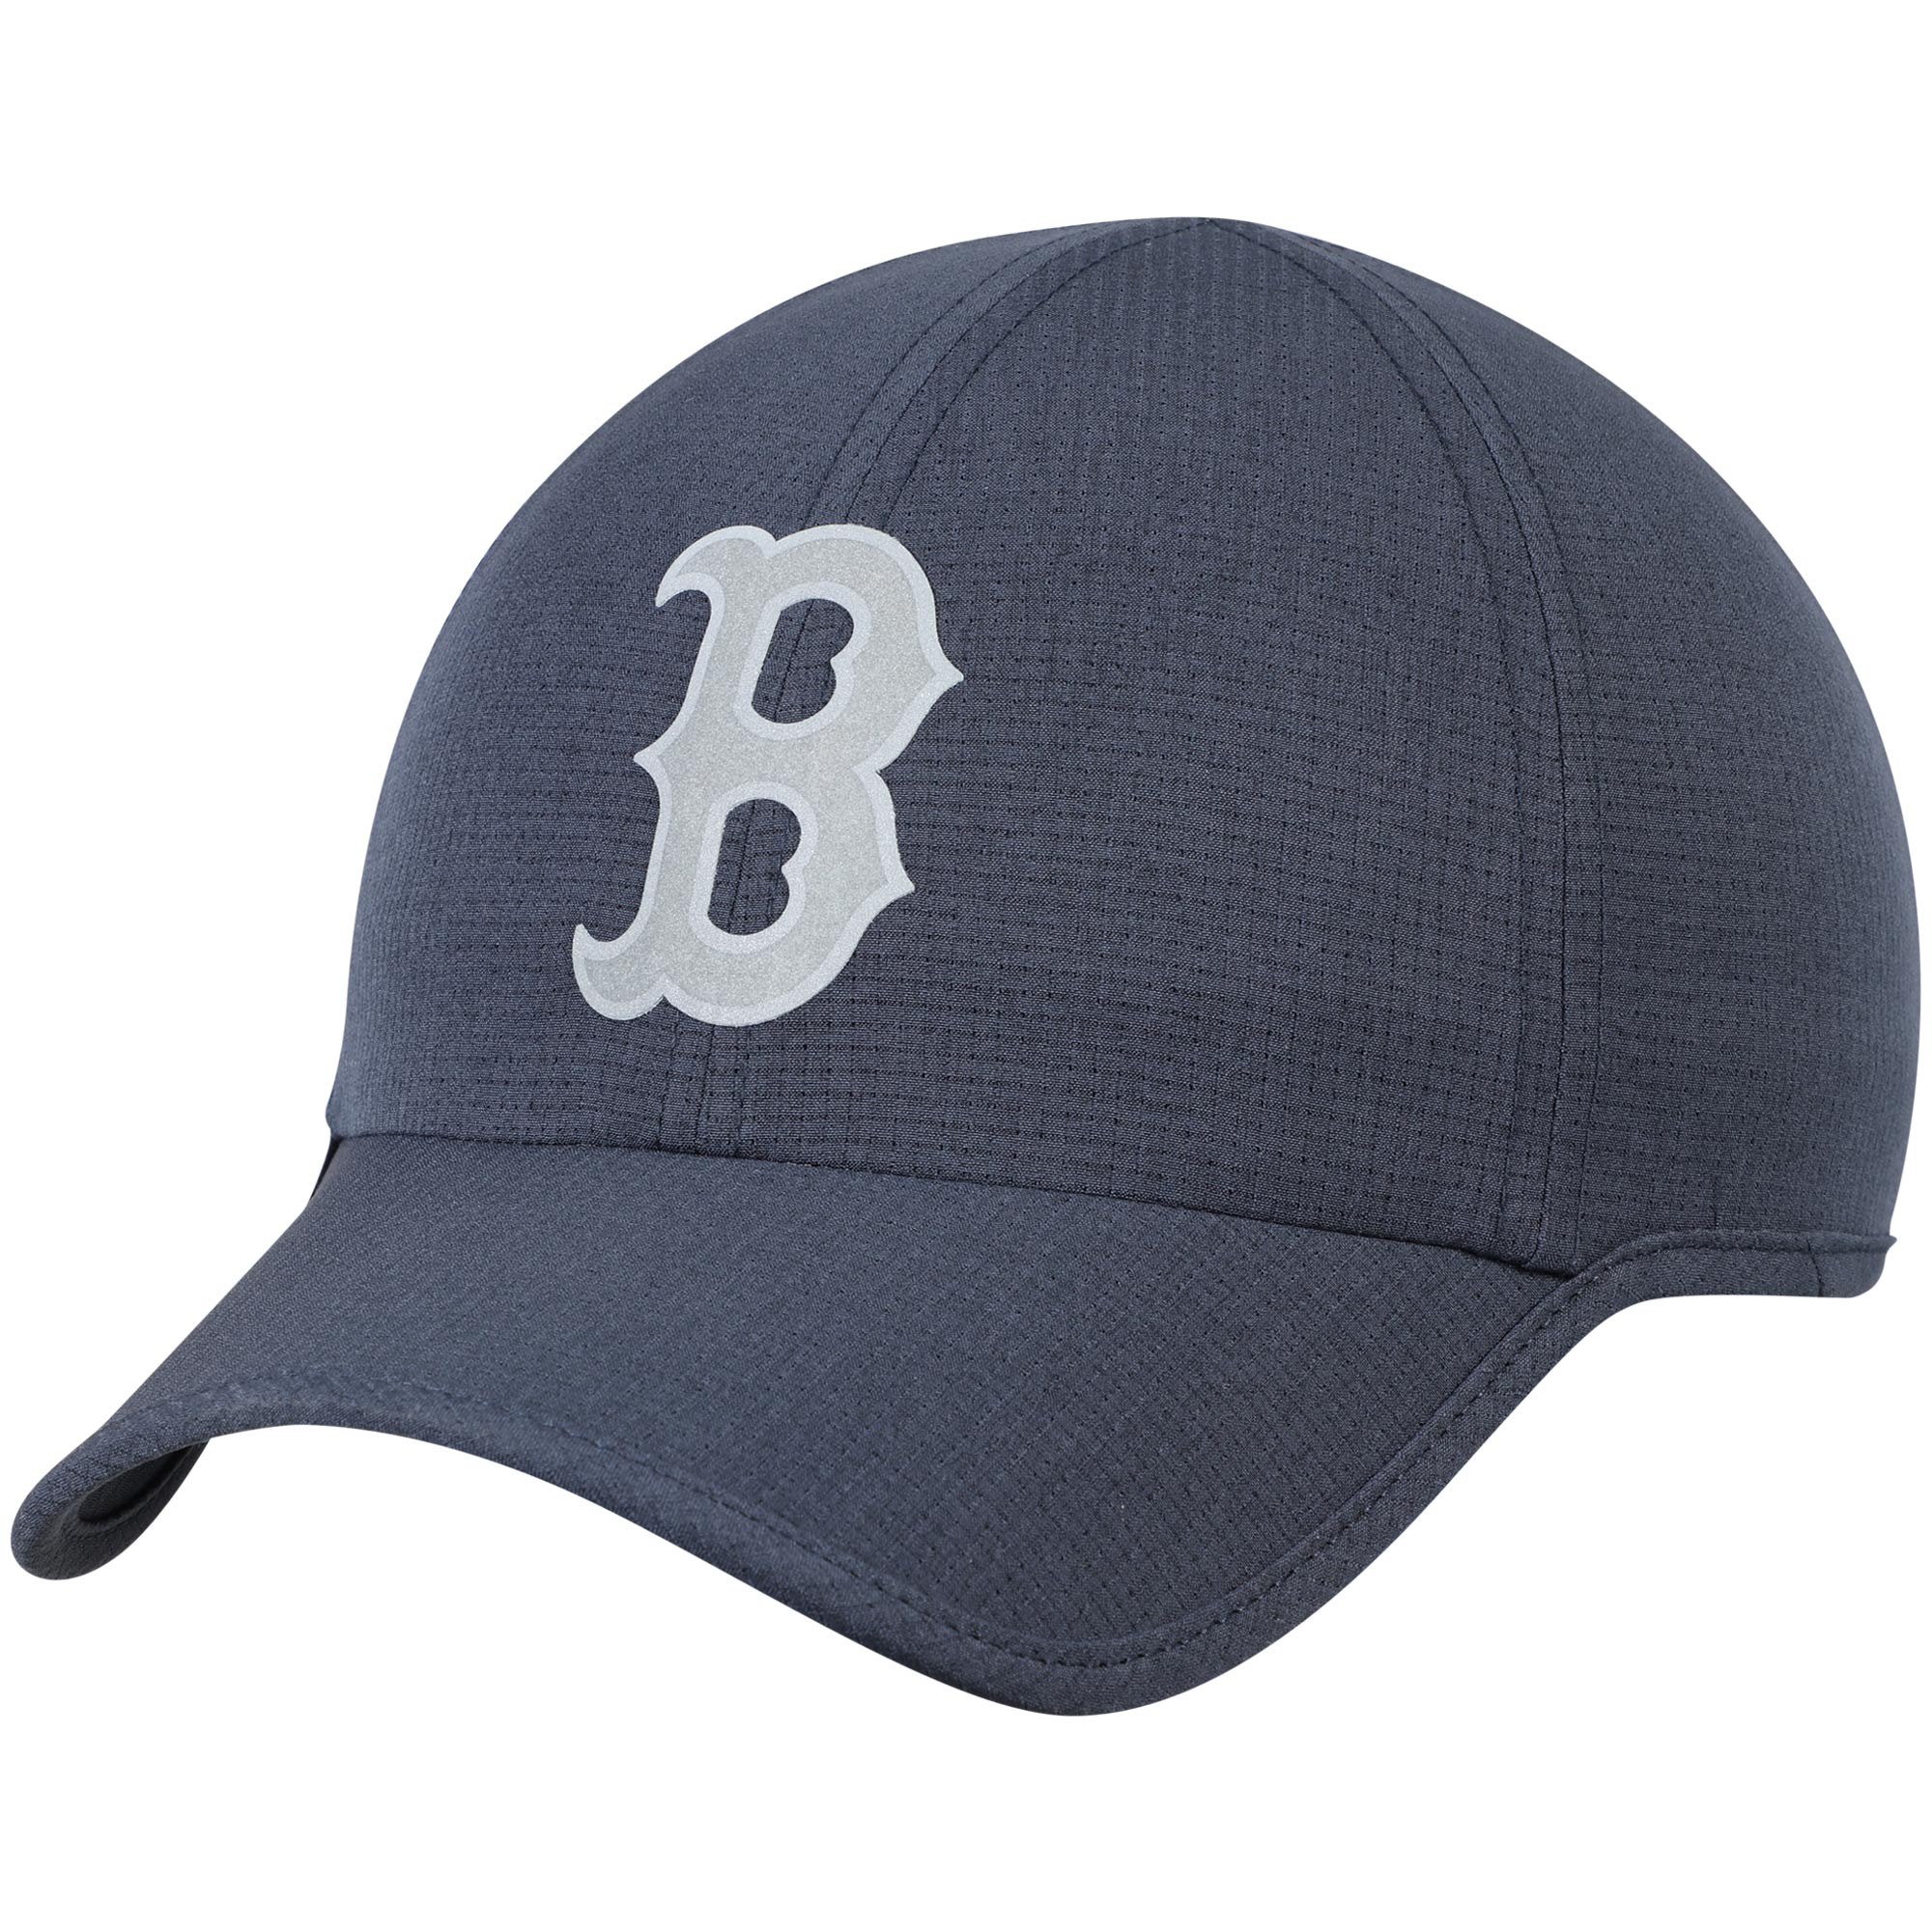 d0849e9045b ... new zealand boston red sox under armour mlb shadow airvent adjustable  hat navy osfa 6d263 84346